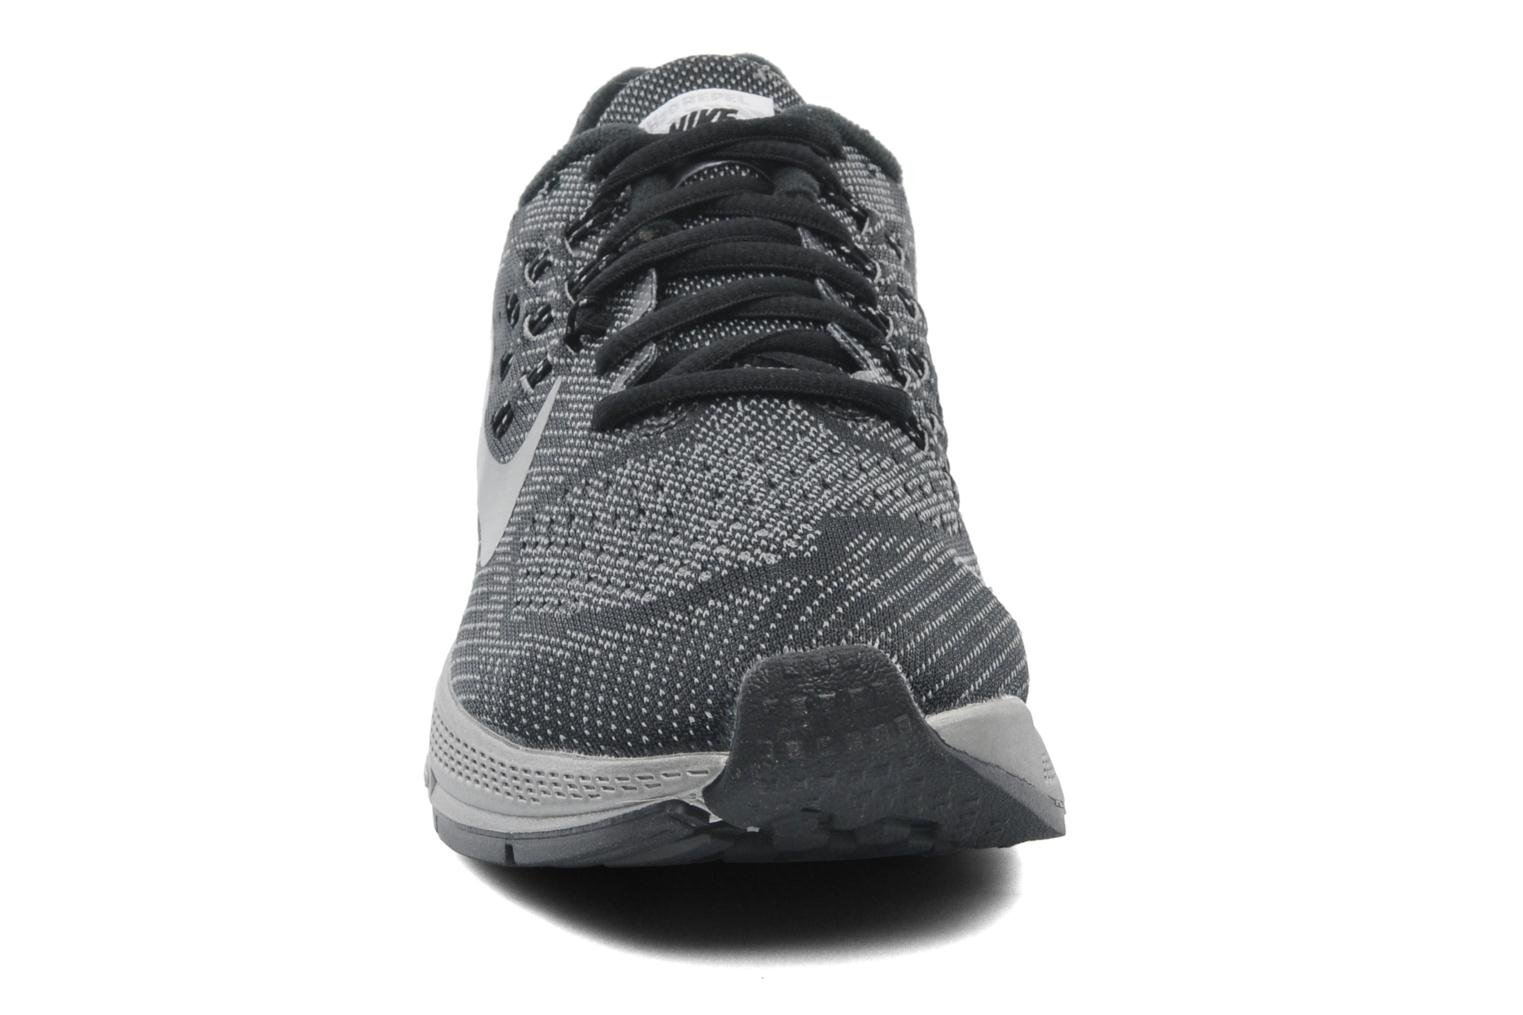 W Nike Zoom Structure 18 Flash Cool Grey/Reflect Silver-Black